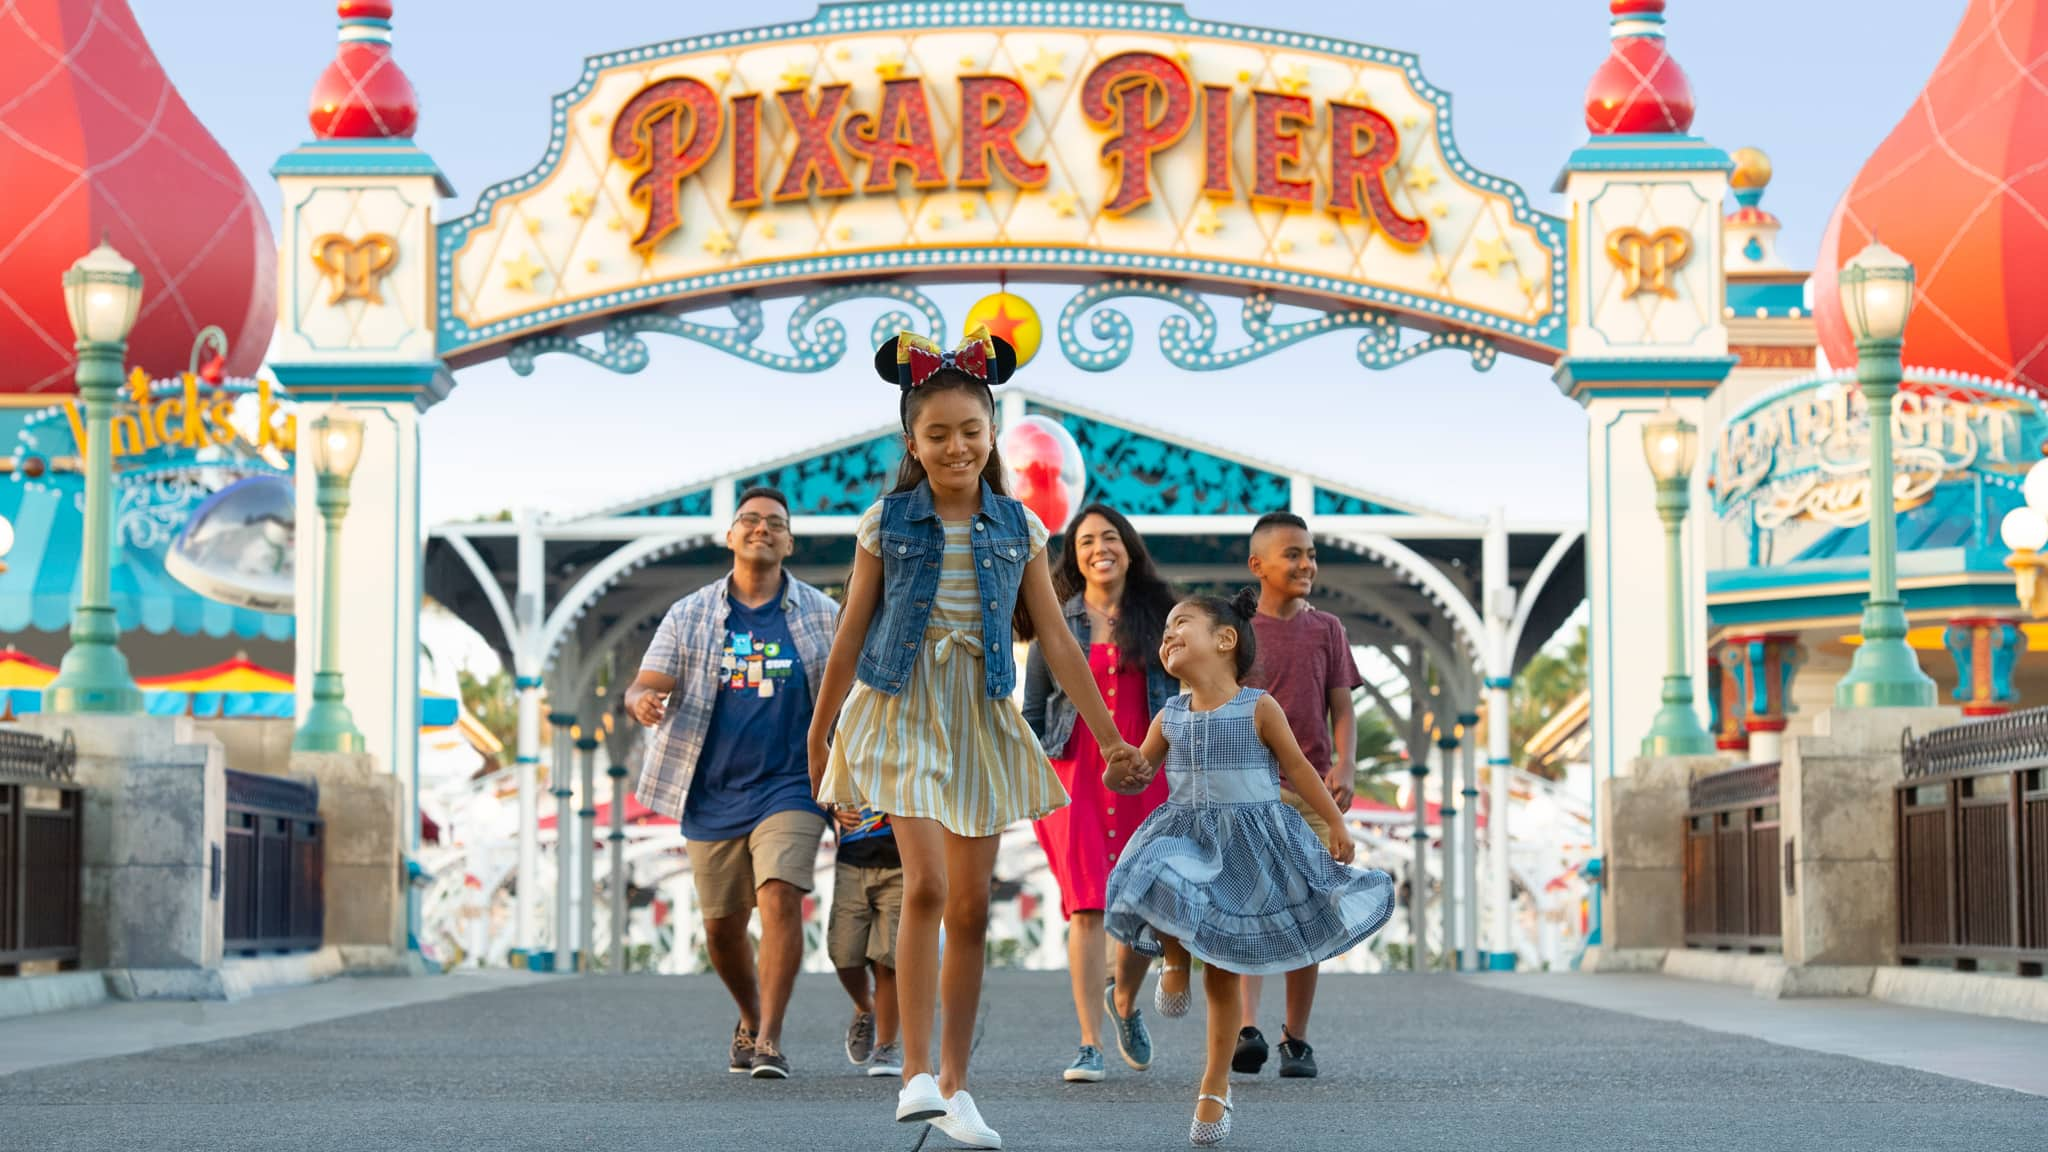 A family of six strolls under the Pixar Pier archway at Disney California Adventure Park